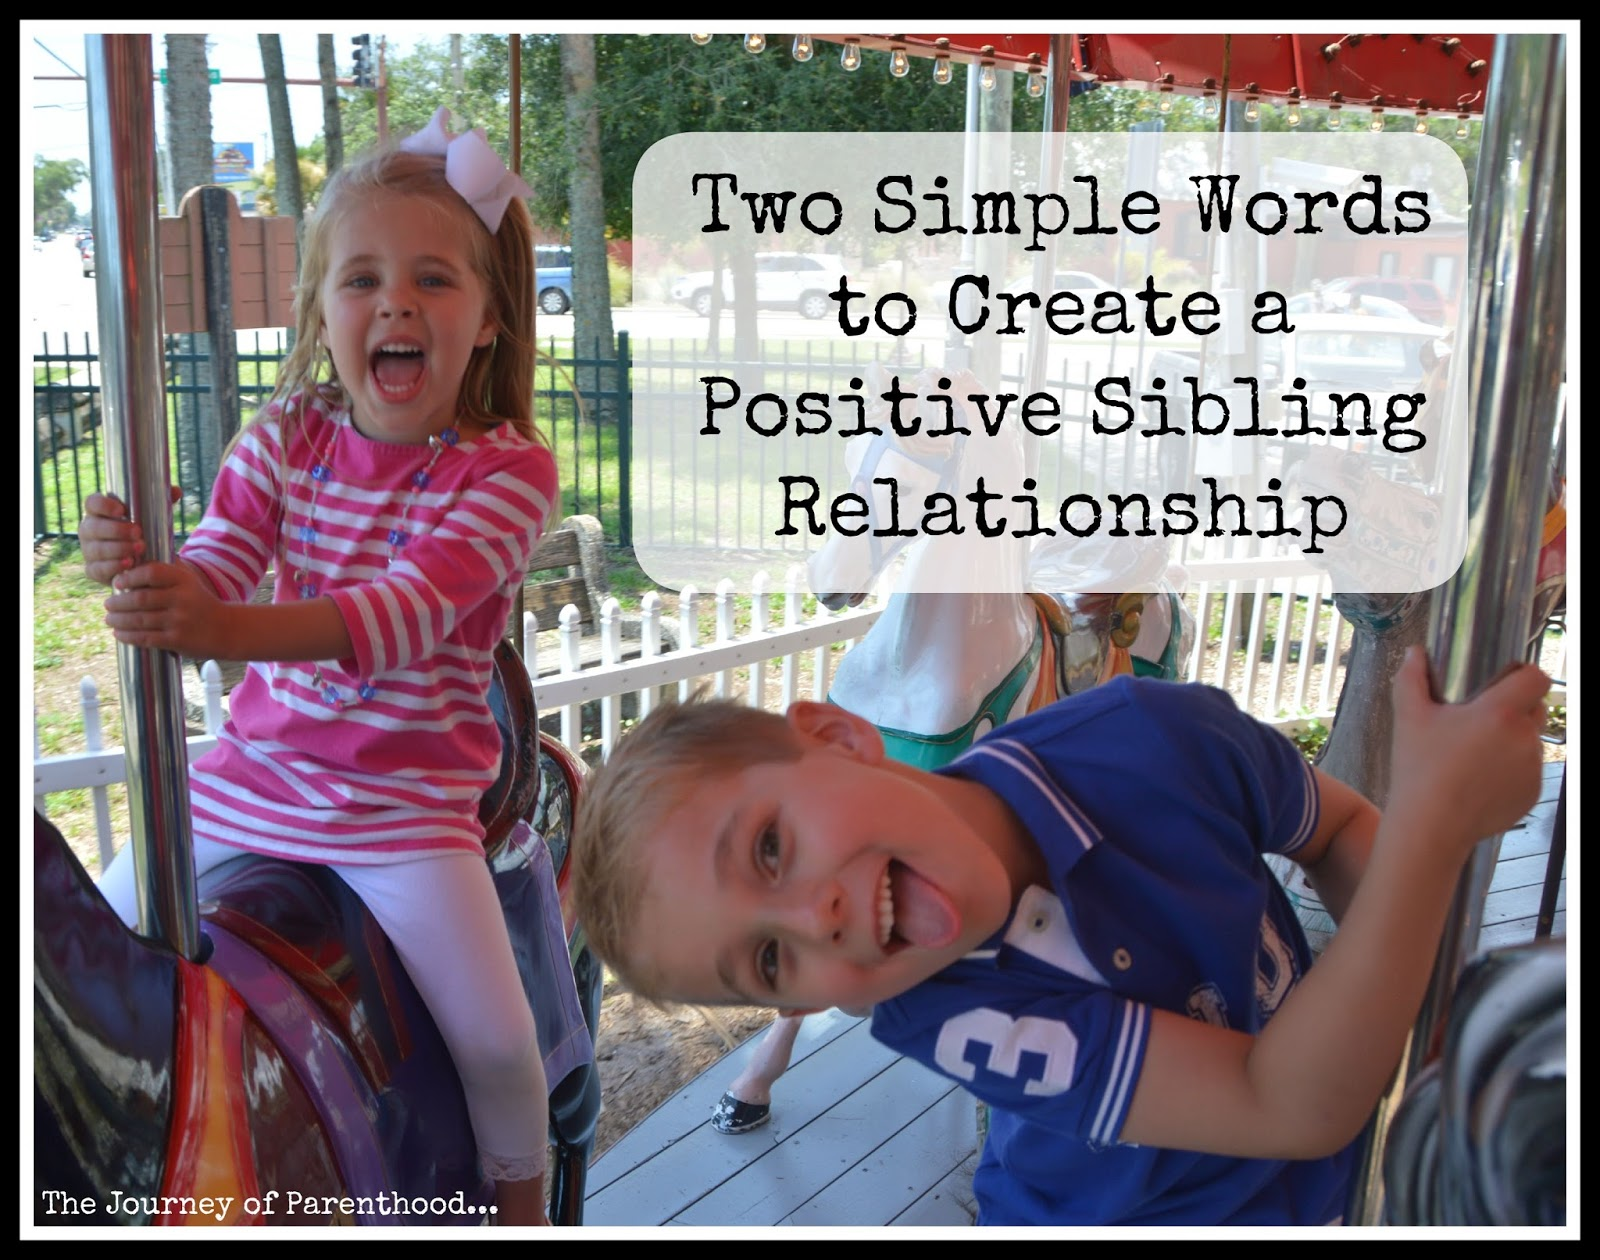 Two Simple Words to Create a Positive Sibling Relationship